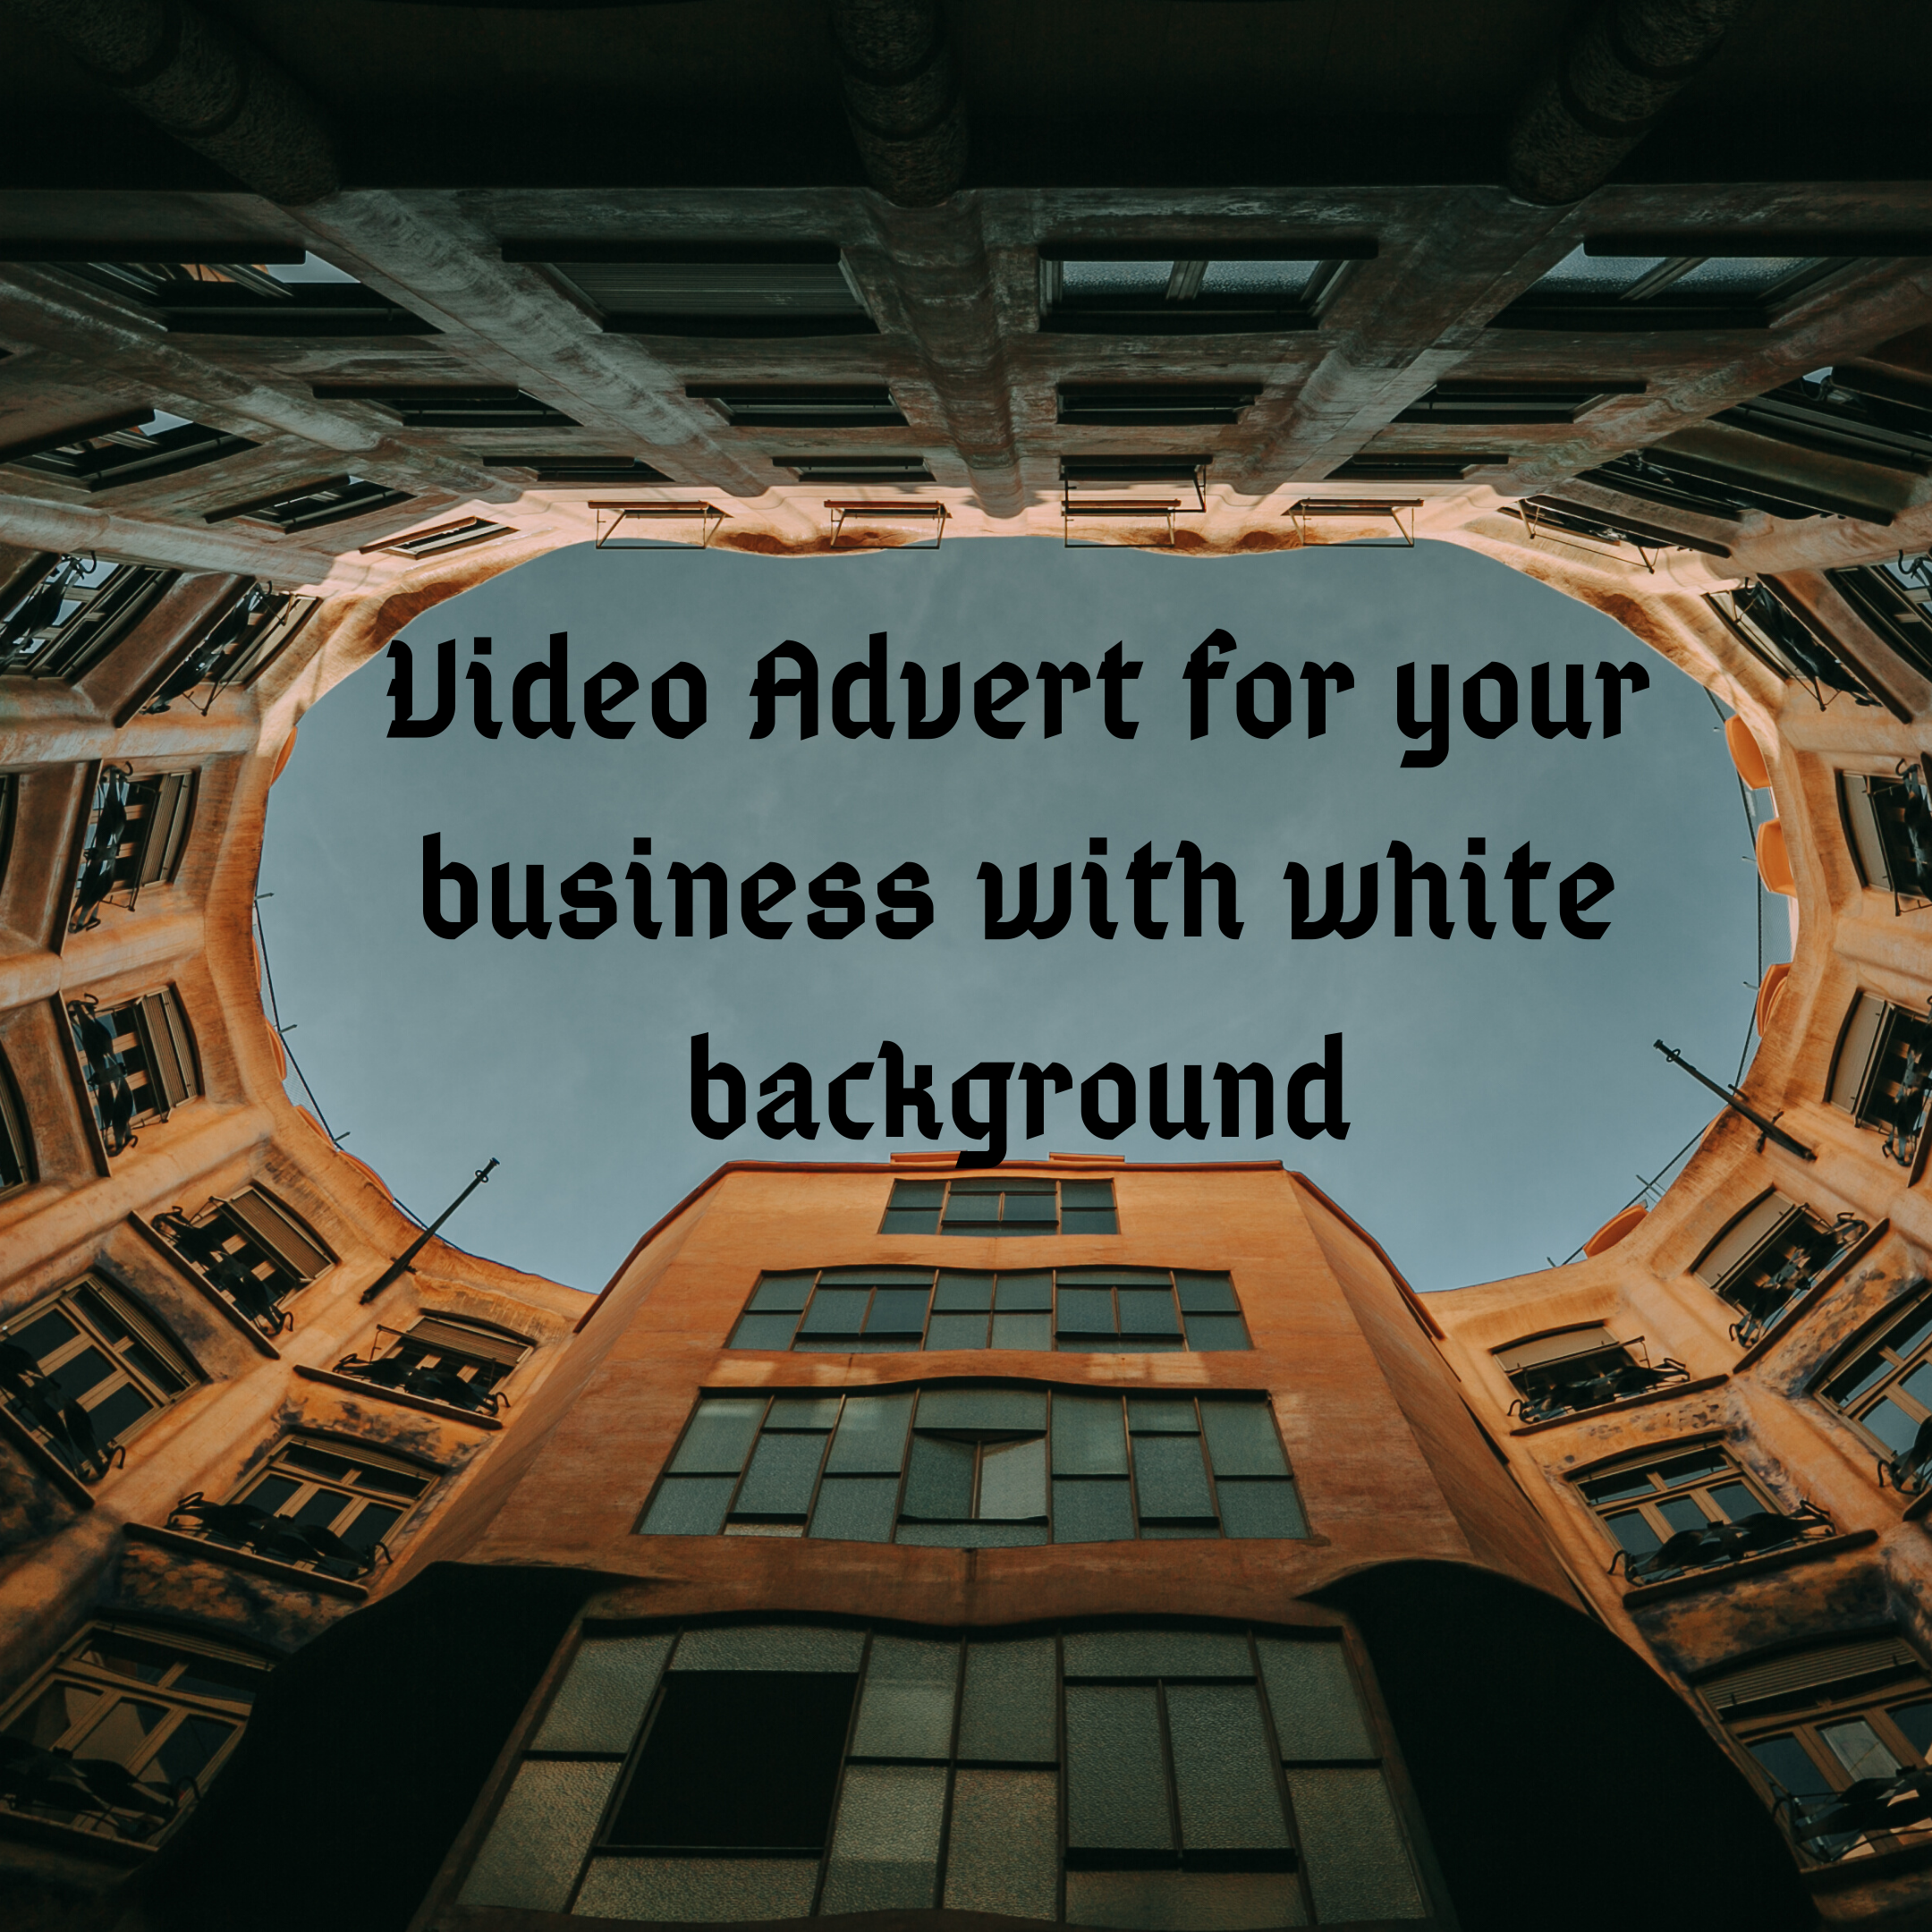 Text Explainer Video for your business advert with black background